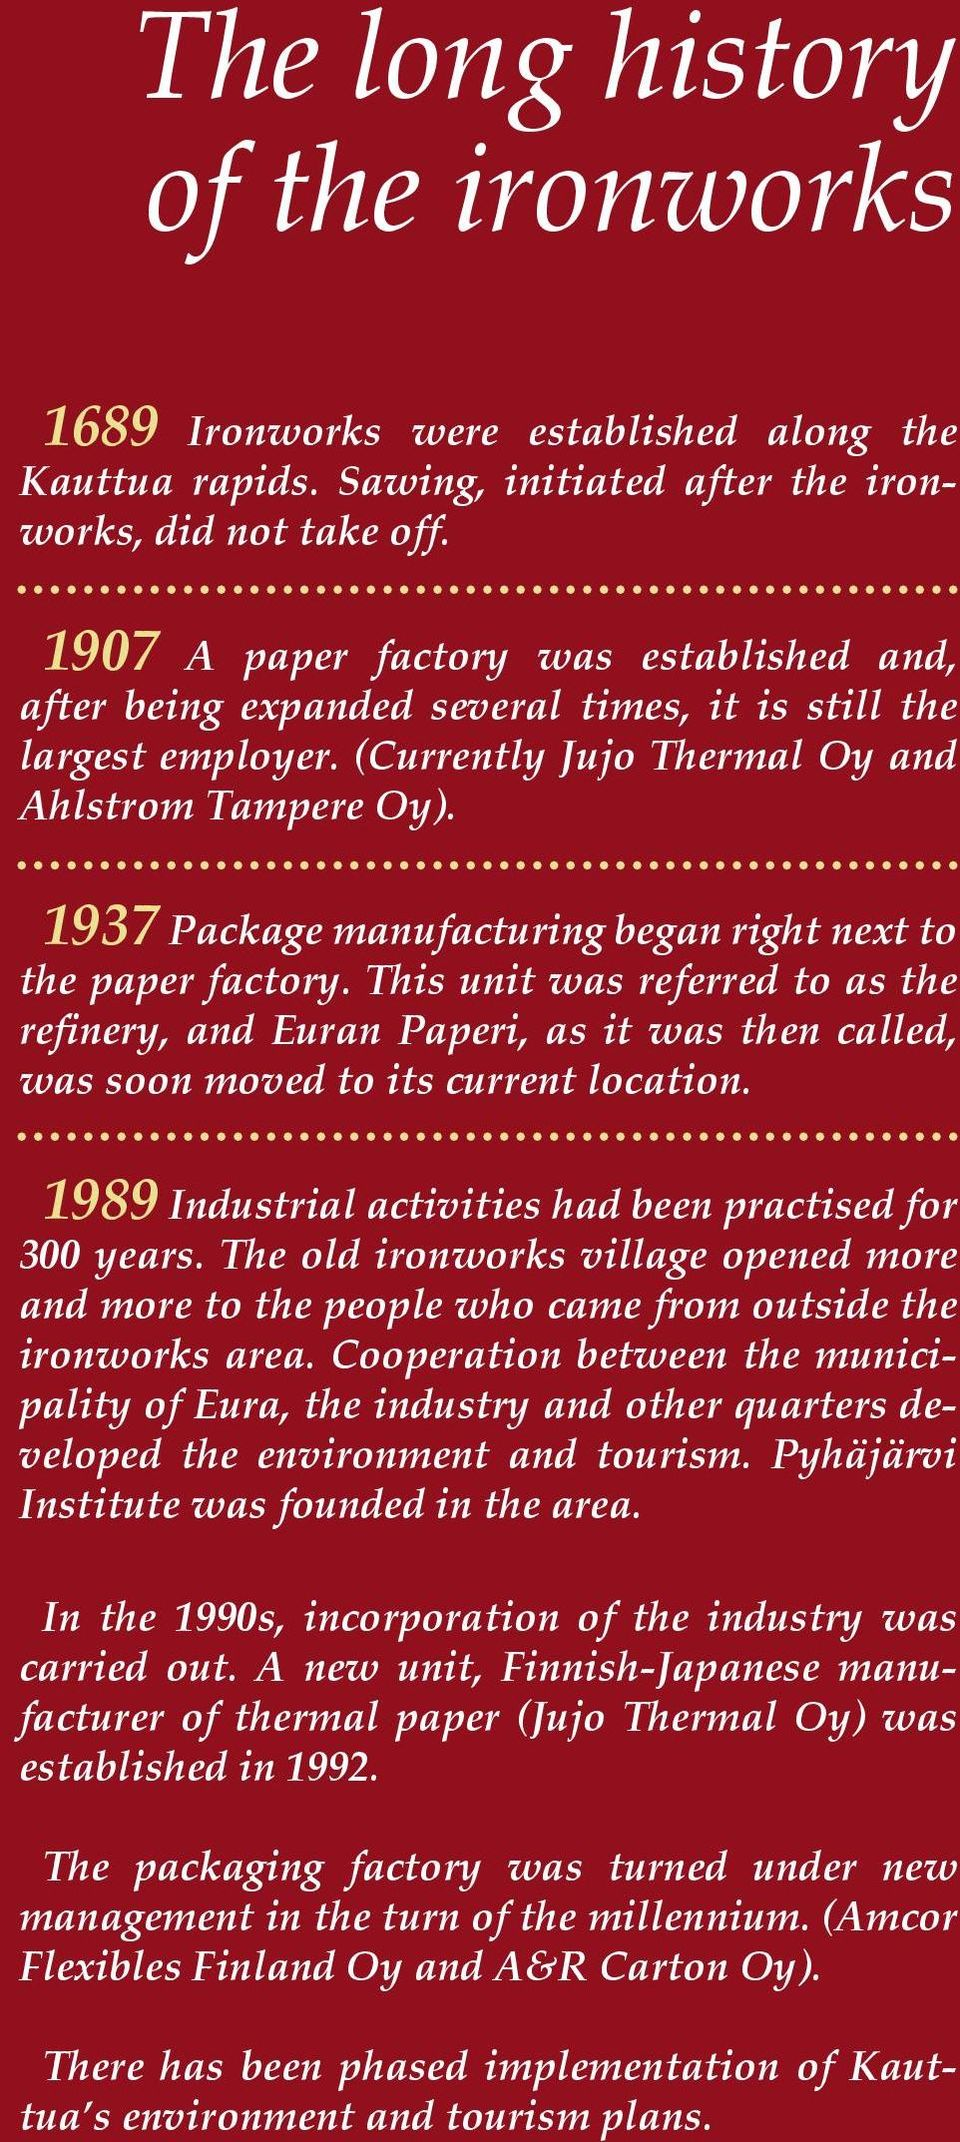 1937 Package manufacturing began right next to the paper factory. This unit was referred to as the refinery, and Euran Paperi, as it was then called, was soon moved to its current location.